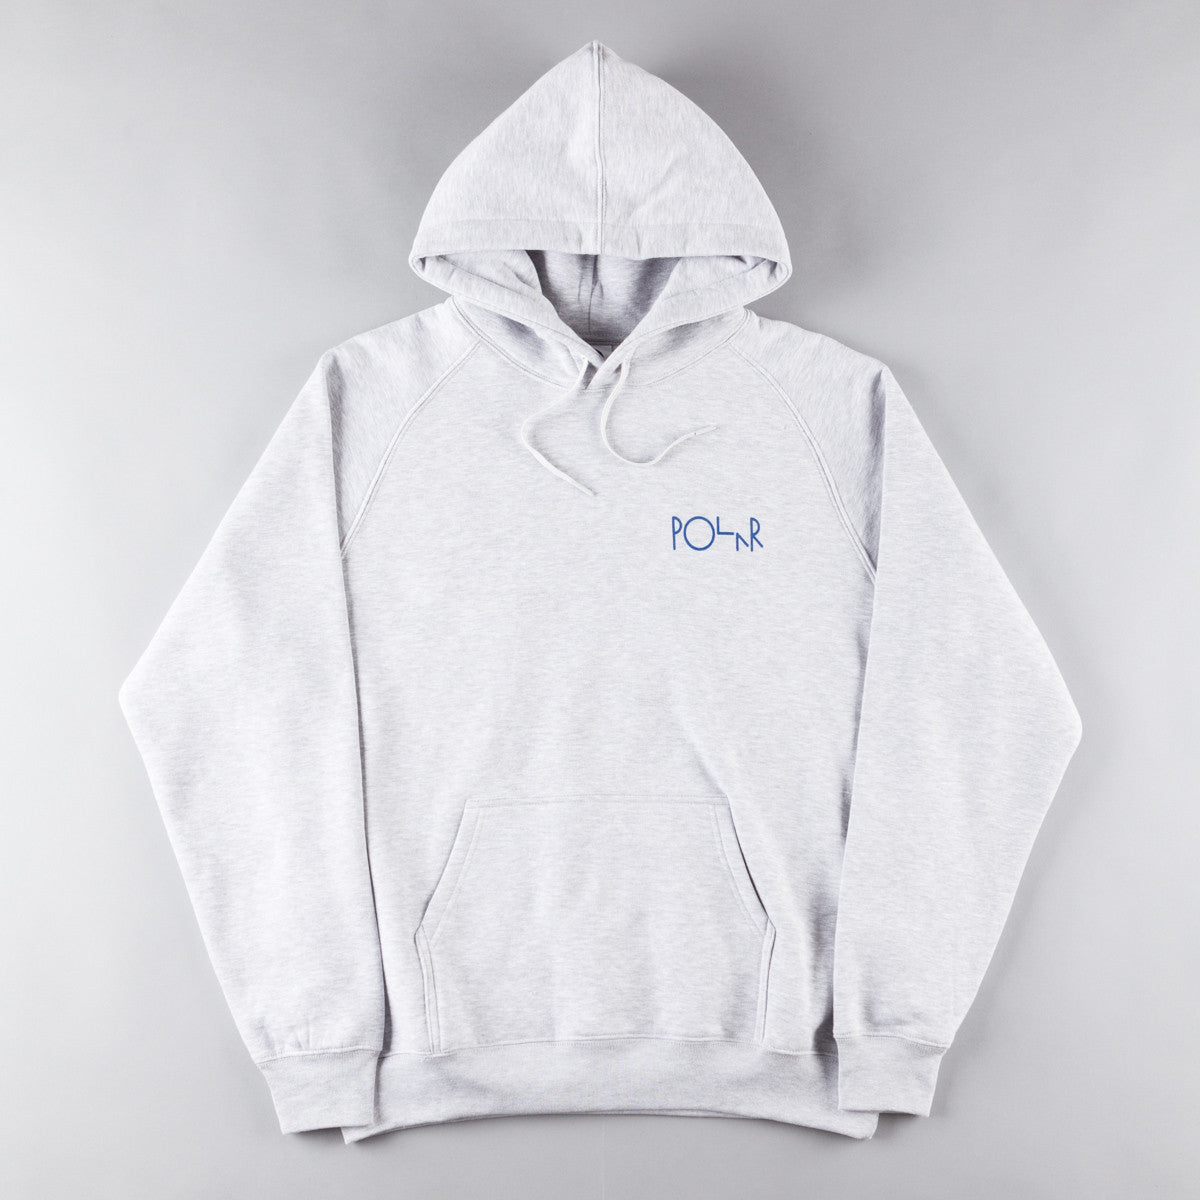 Polar Stroke Logo Hooded Sweatshirt